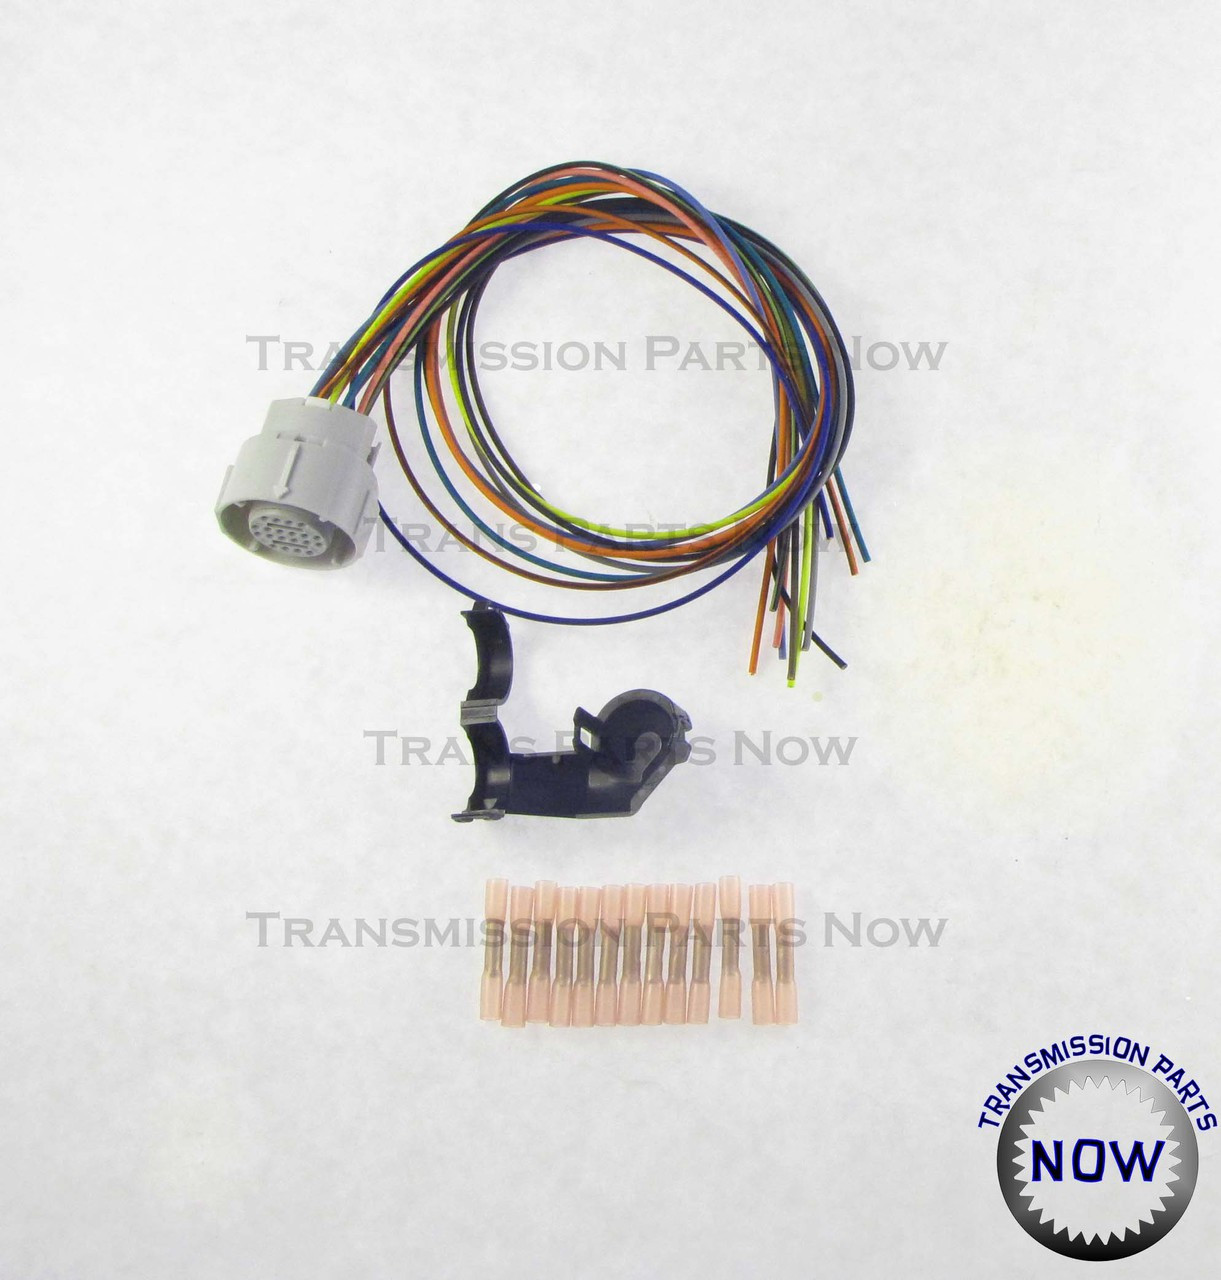 4L80E external wiring harness update kit, 34445EKTransmission Parts Now